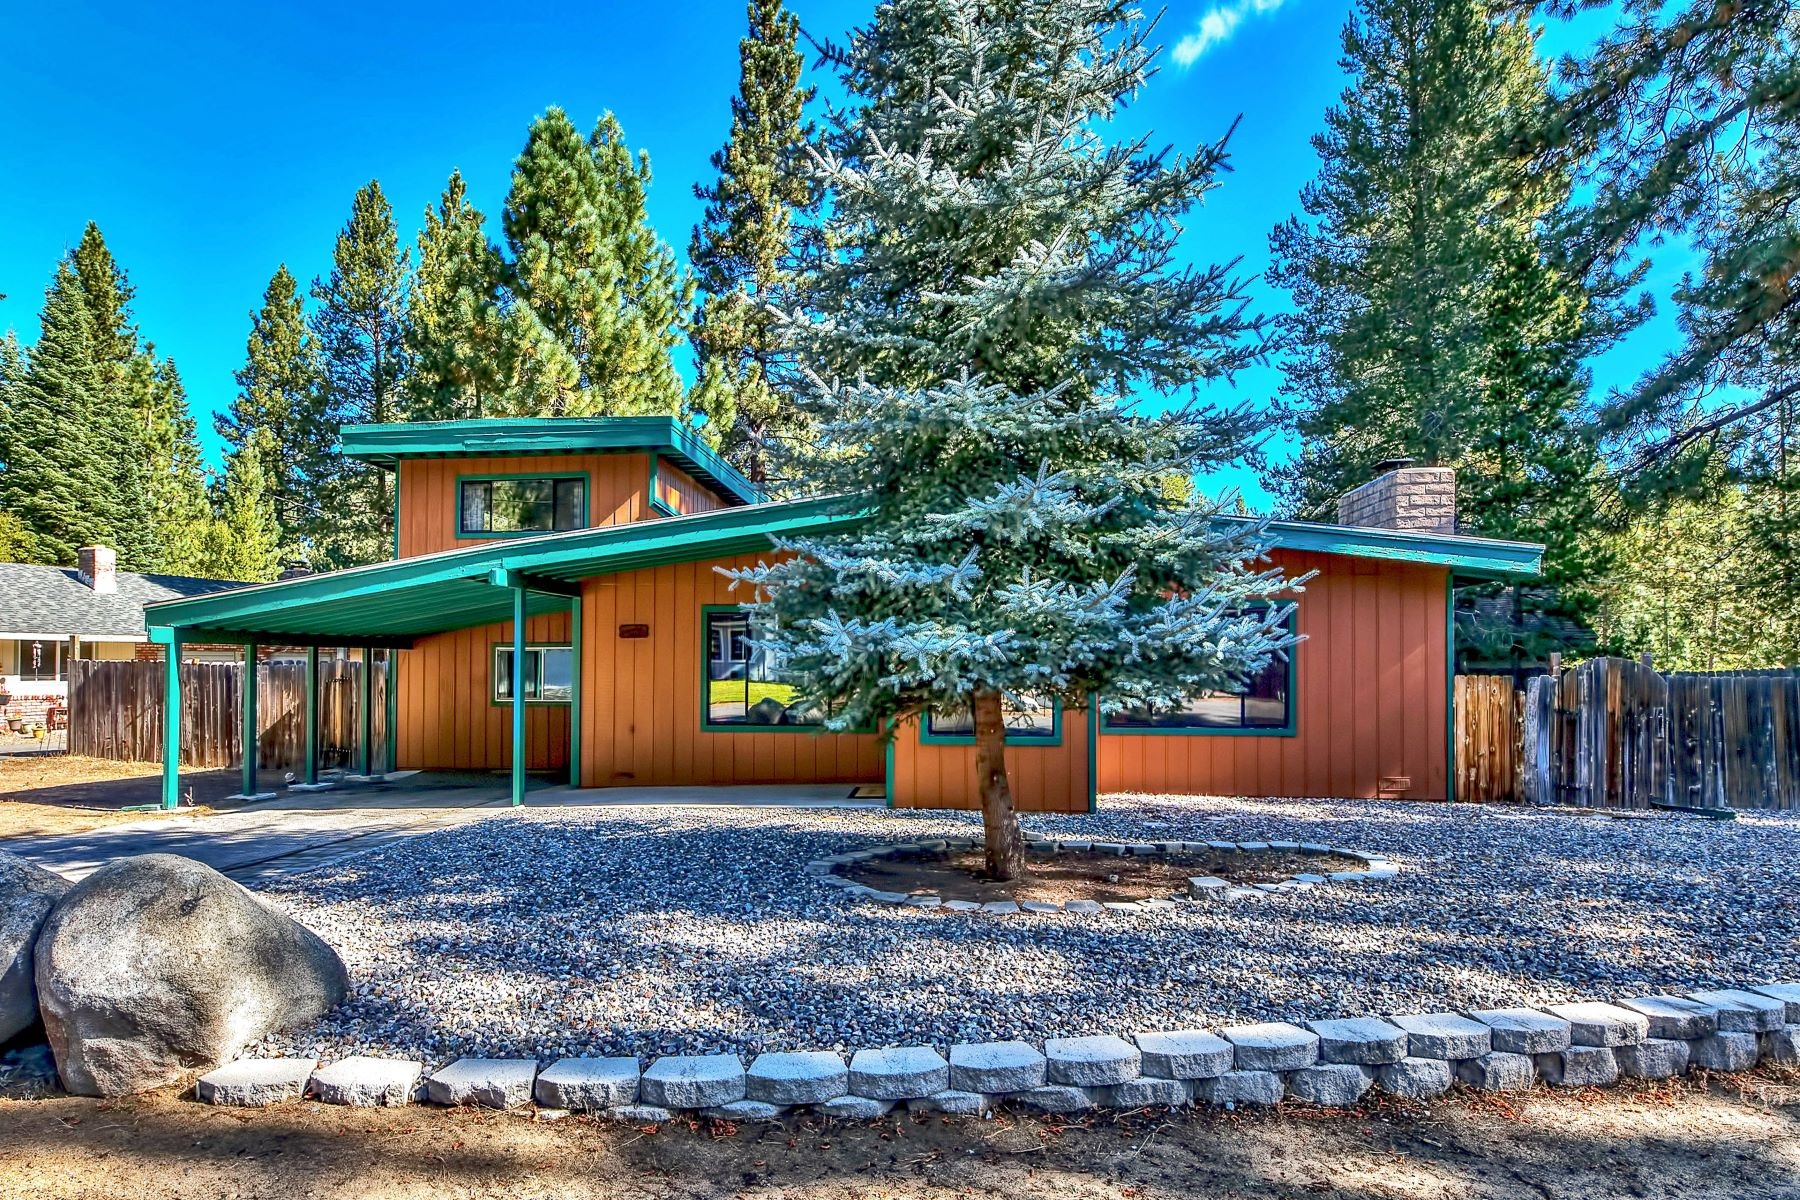 Single Family Homes for Active at Tahoe Island charmer. 817 Hazel Drive South Lake Tahoe, California 96150 United States